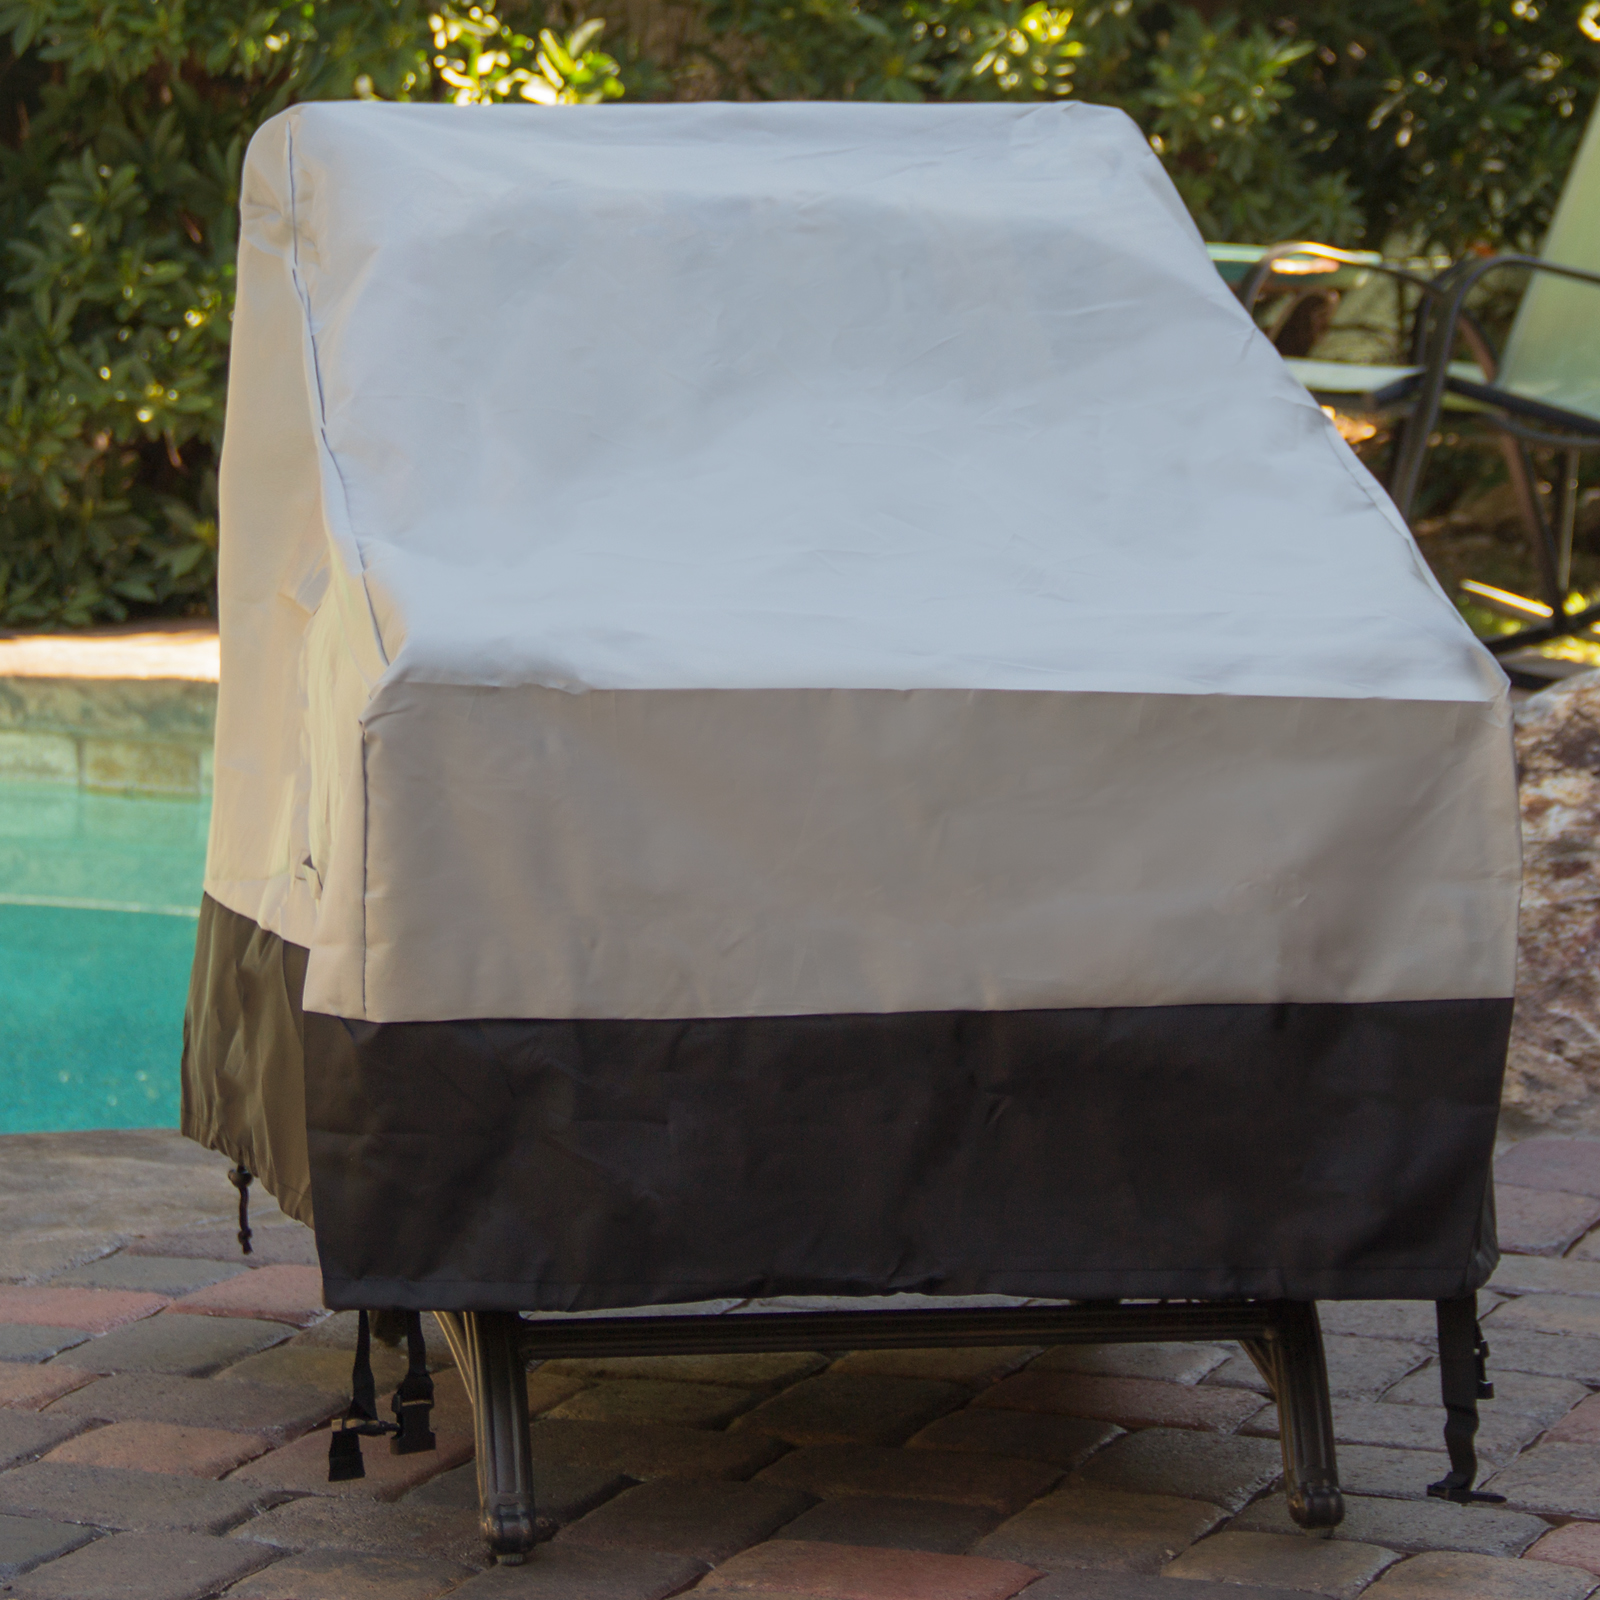 Patio Chair Covers 2 Pack Deep Seat Chair Outdoor Furniture Patio Cover Ebay